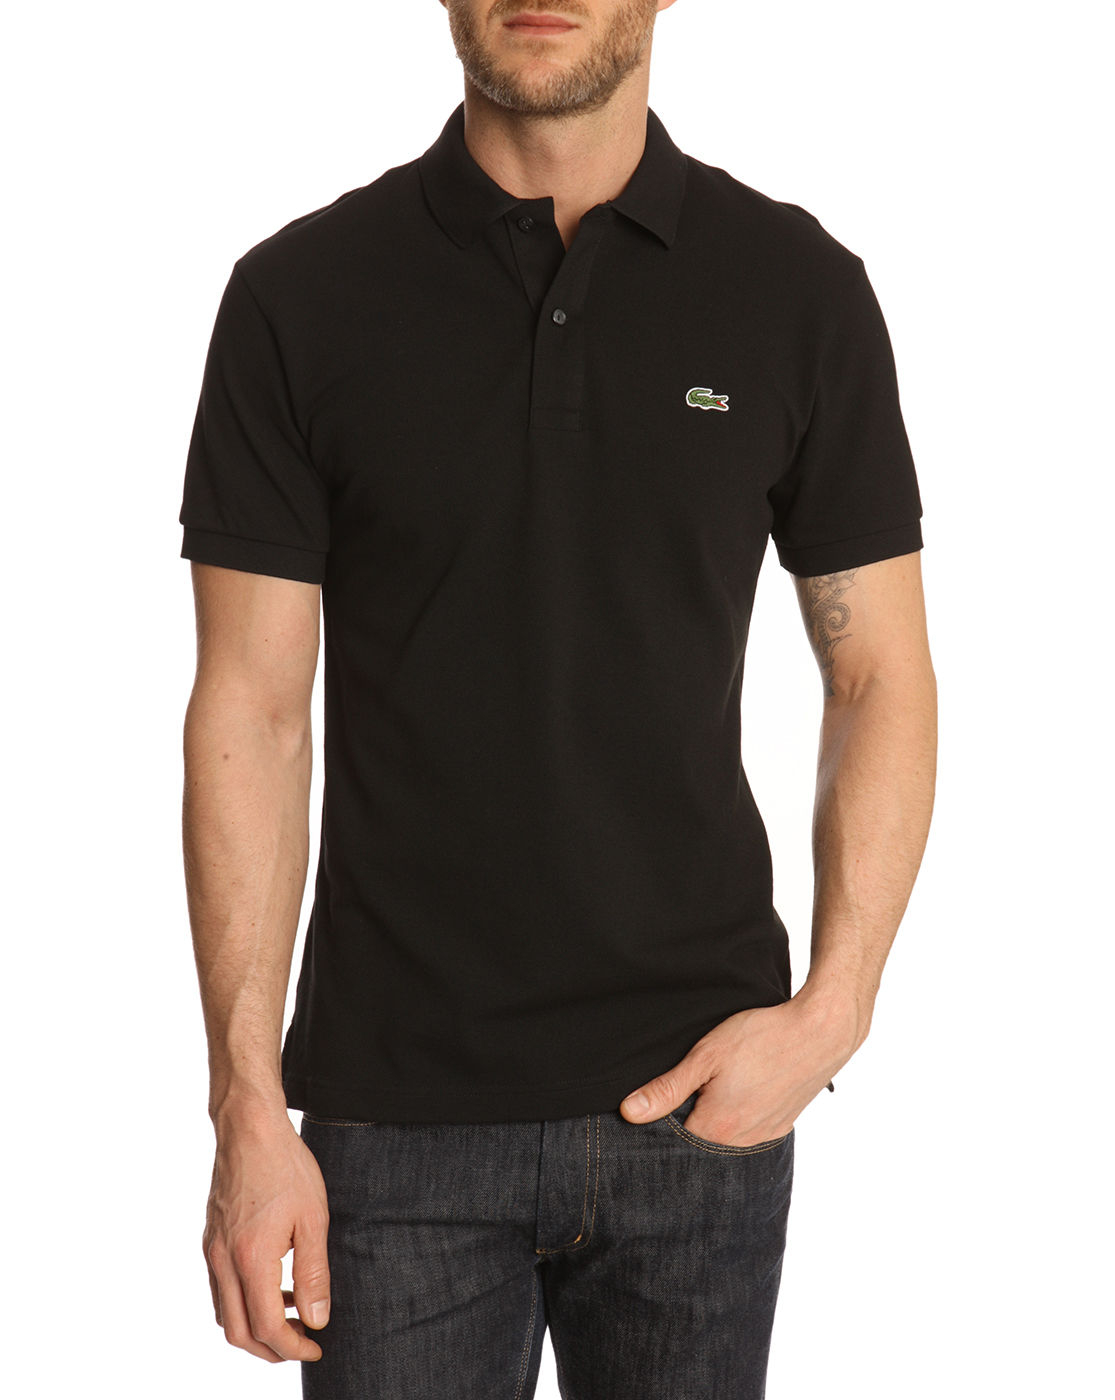 lacoste black slim fit polo shirt in black for men lyst. Black Bedroom Furniture Sets. Home Design Ideas